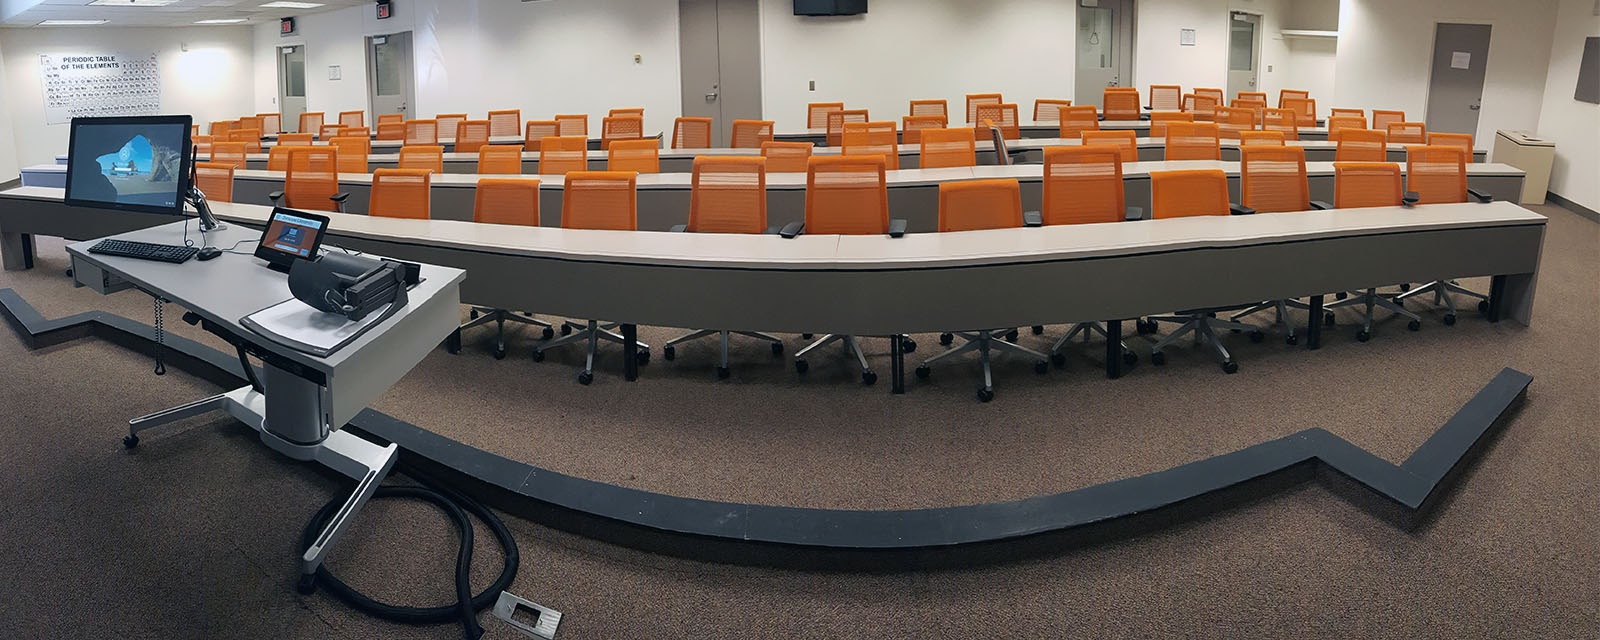 Sci-tech 1-019 Panorama from front to rear, chairs moveable with tables, mobile teaching station at front center of room